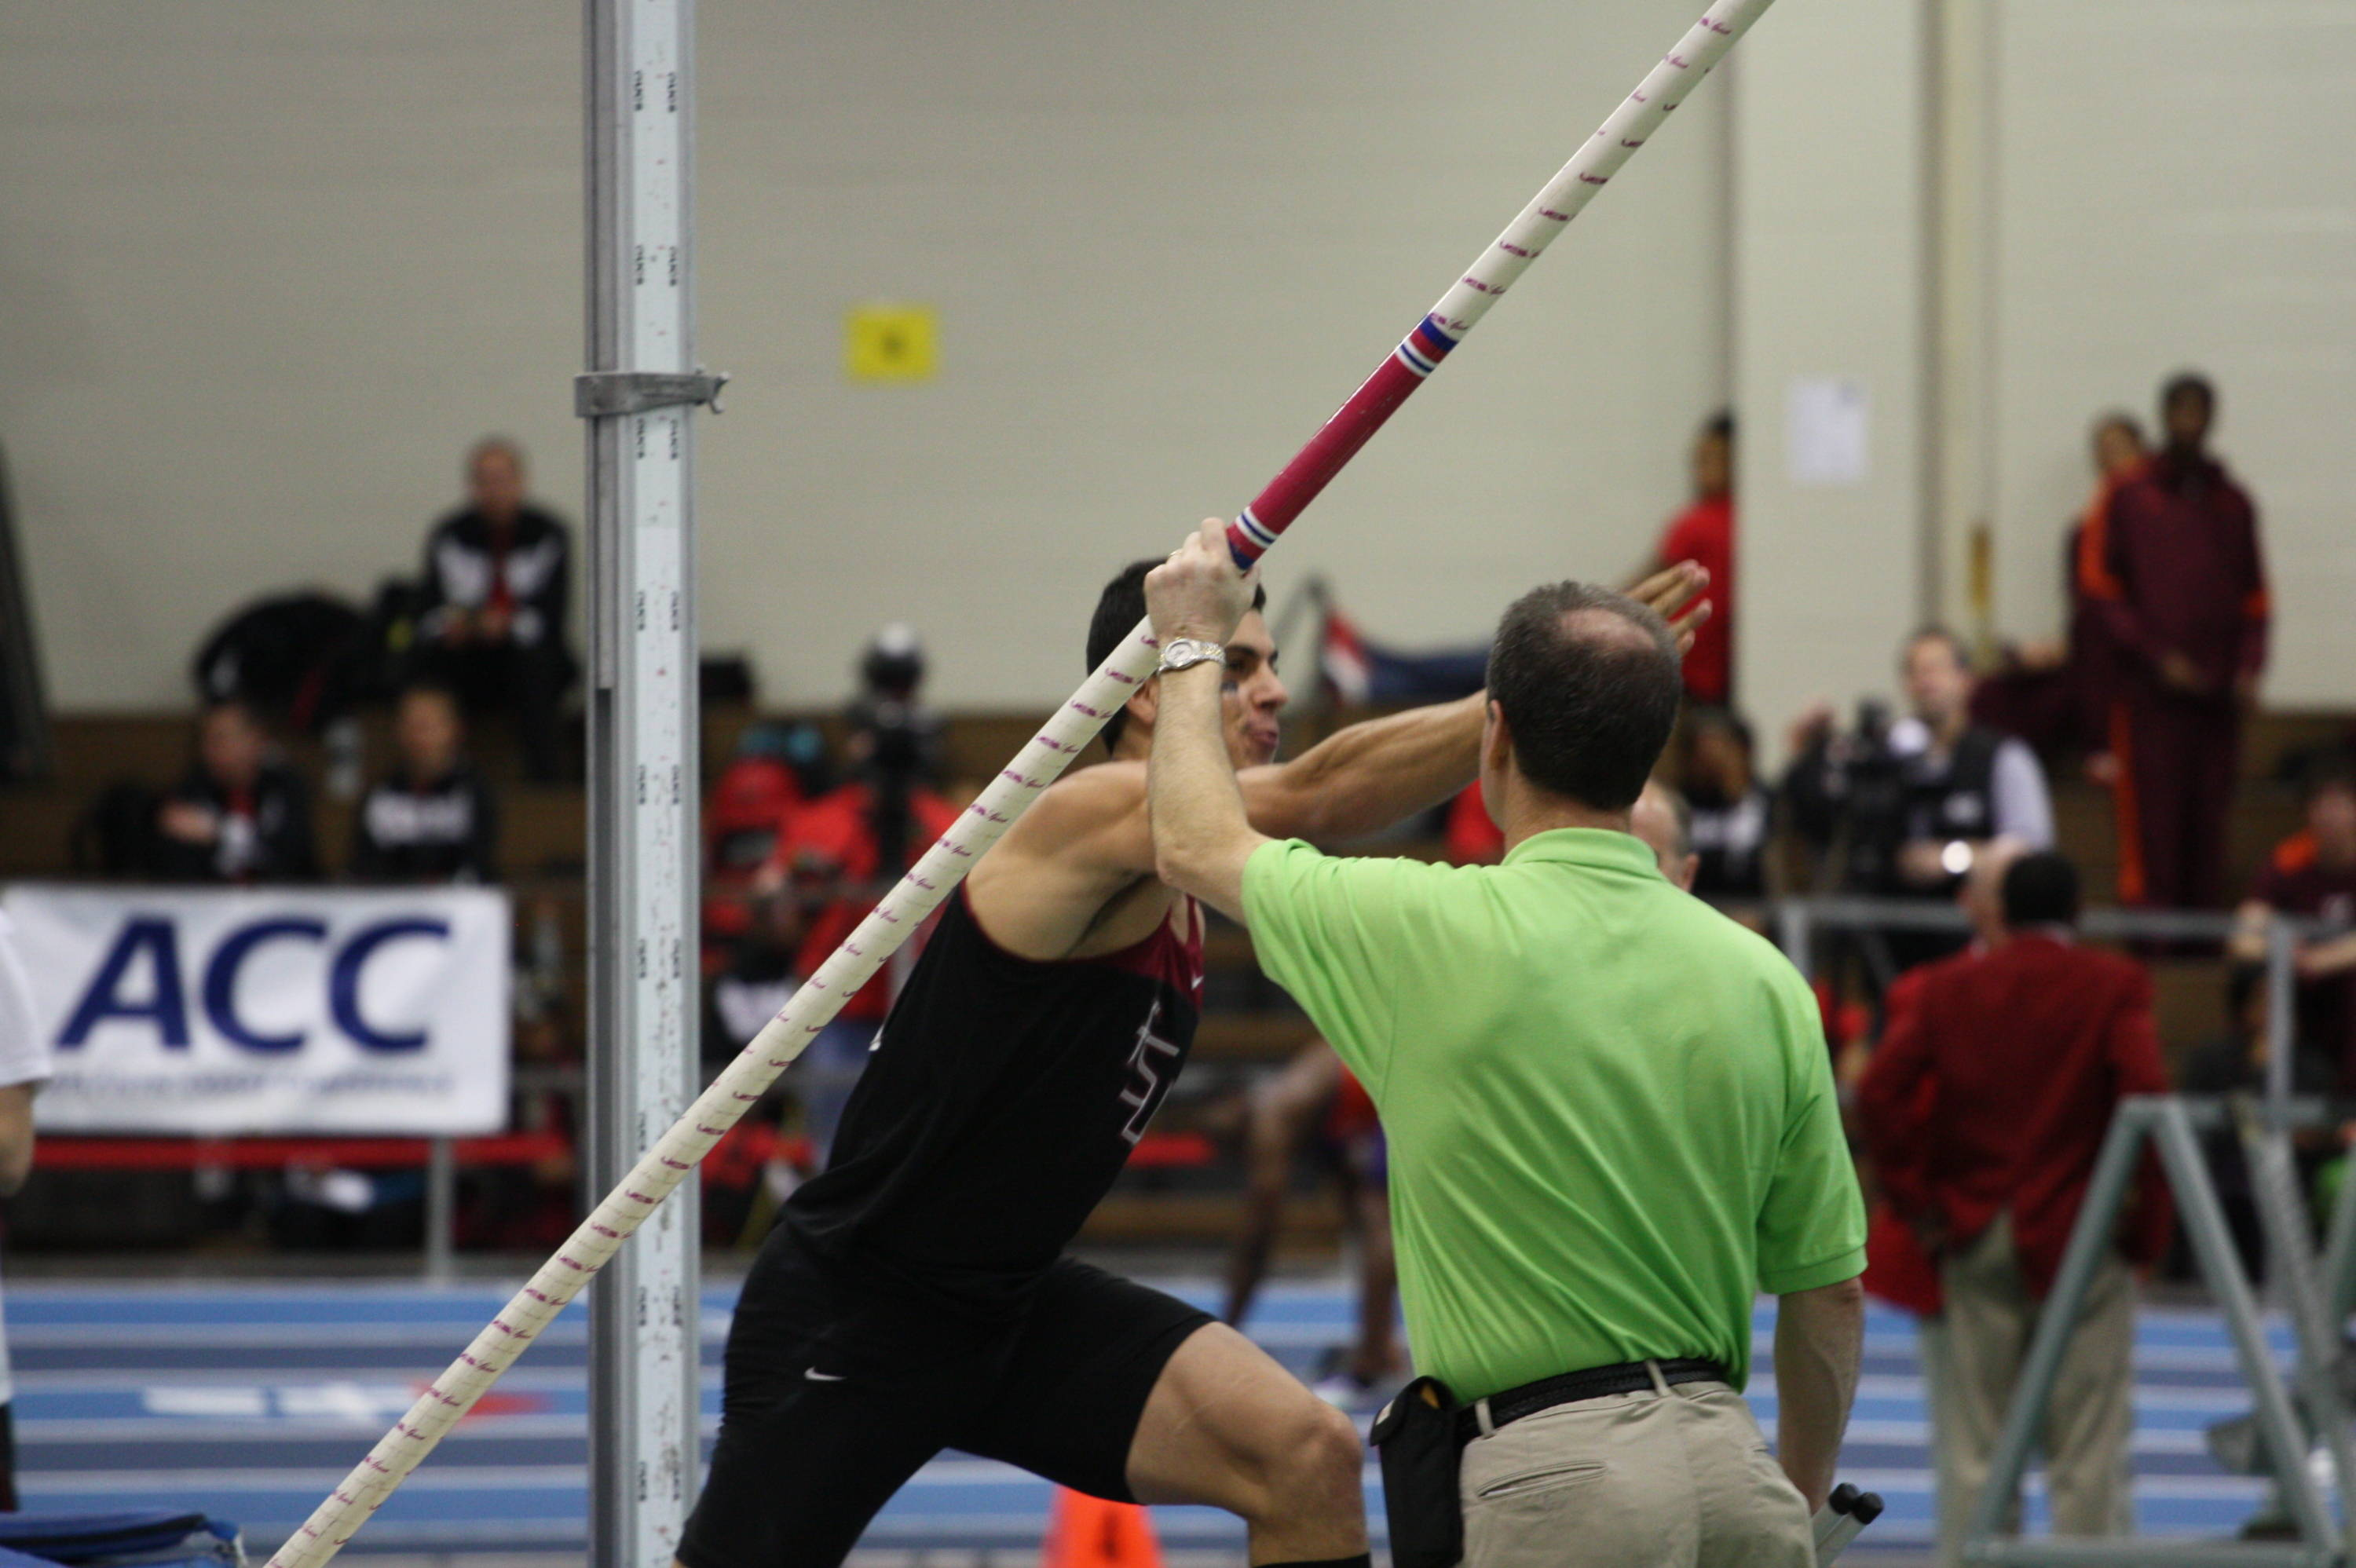 In a show of emotion, Gonzalo Barriolhet does the chop as he bounds from the pit after his winning vault.